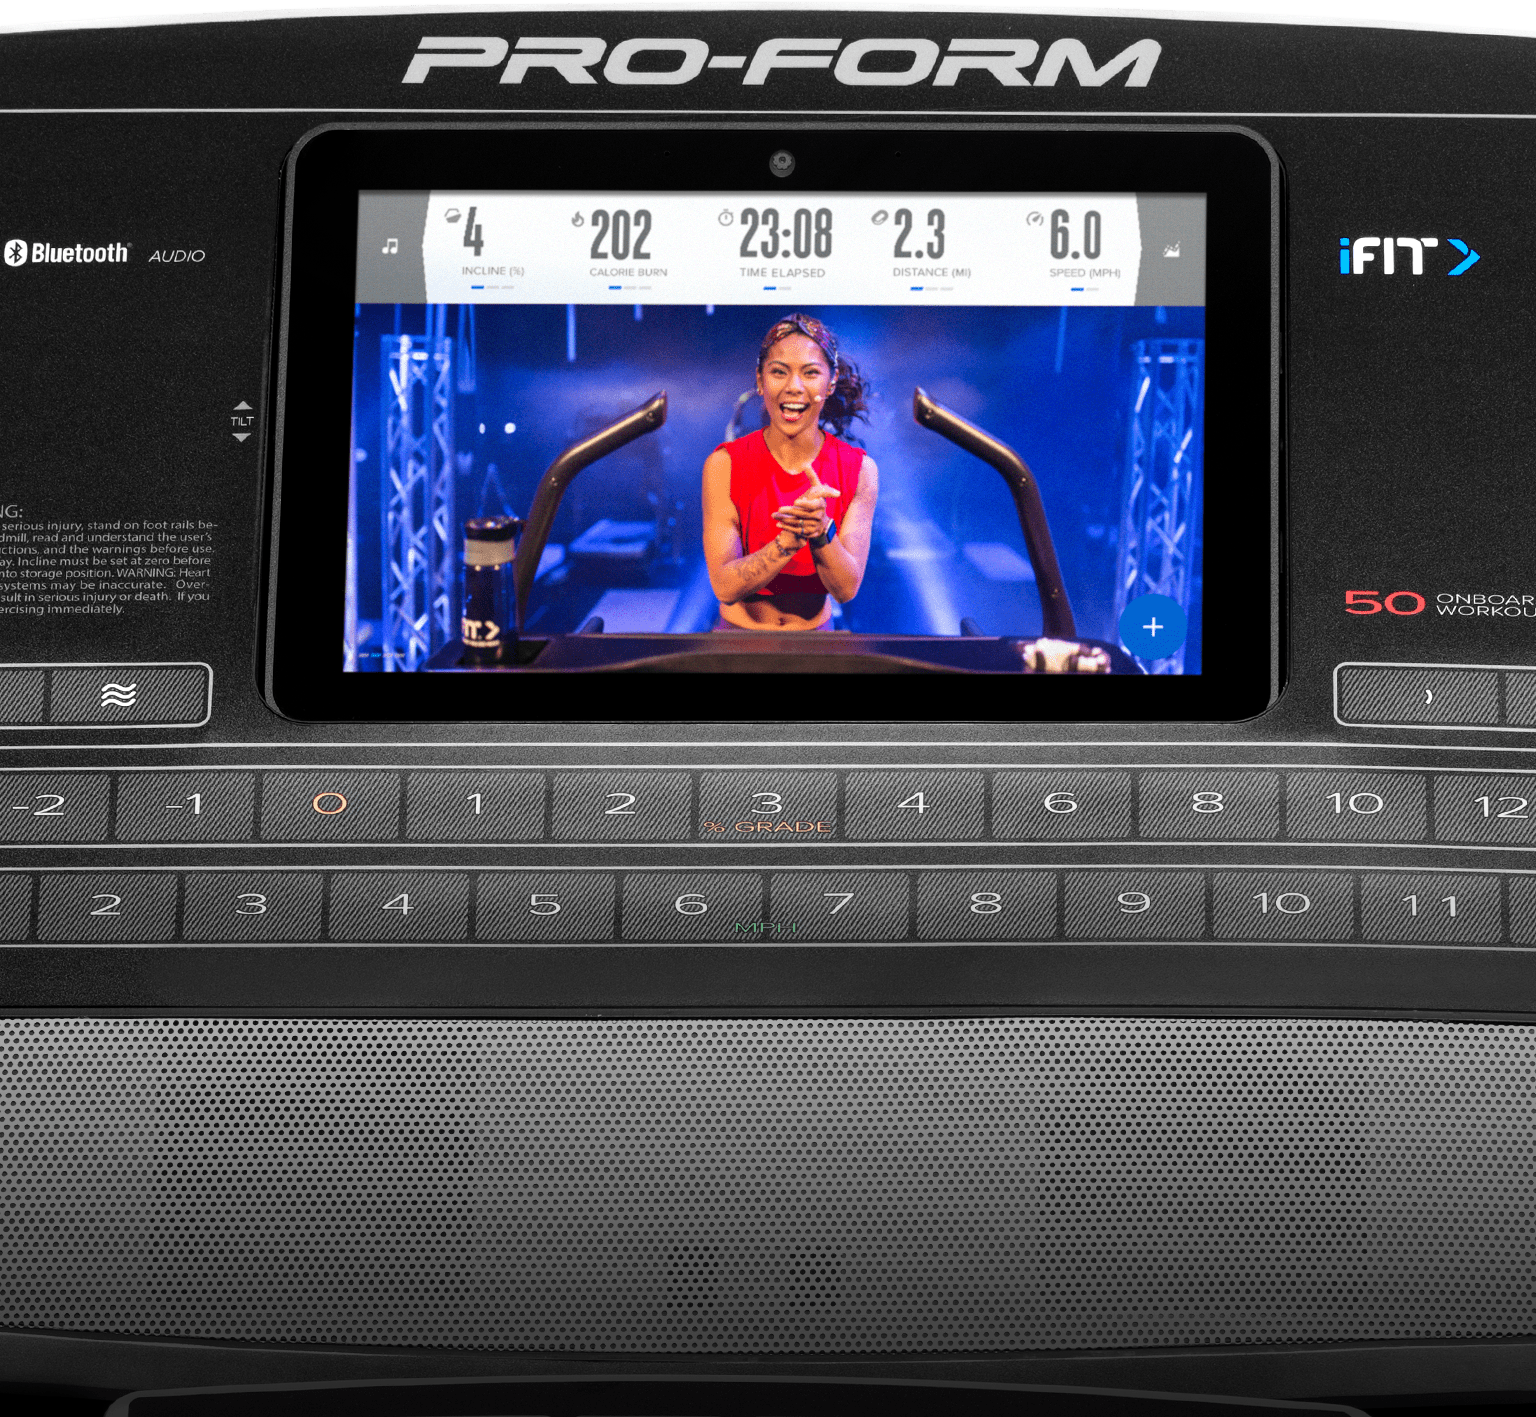 ProForm SMART Pro 5000 Treadmills